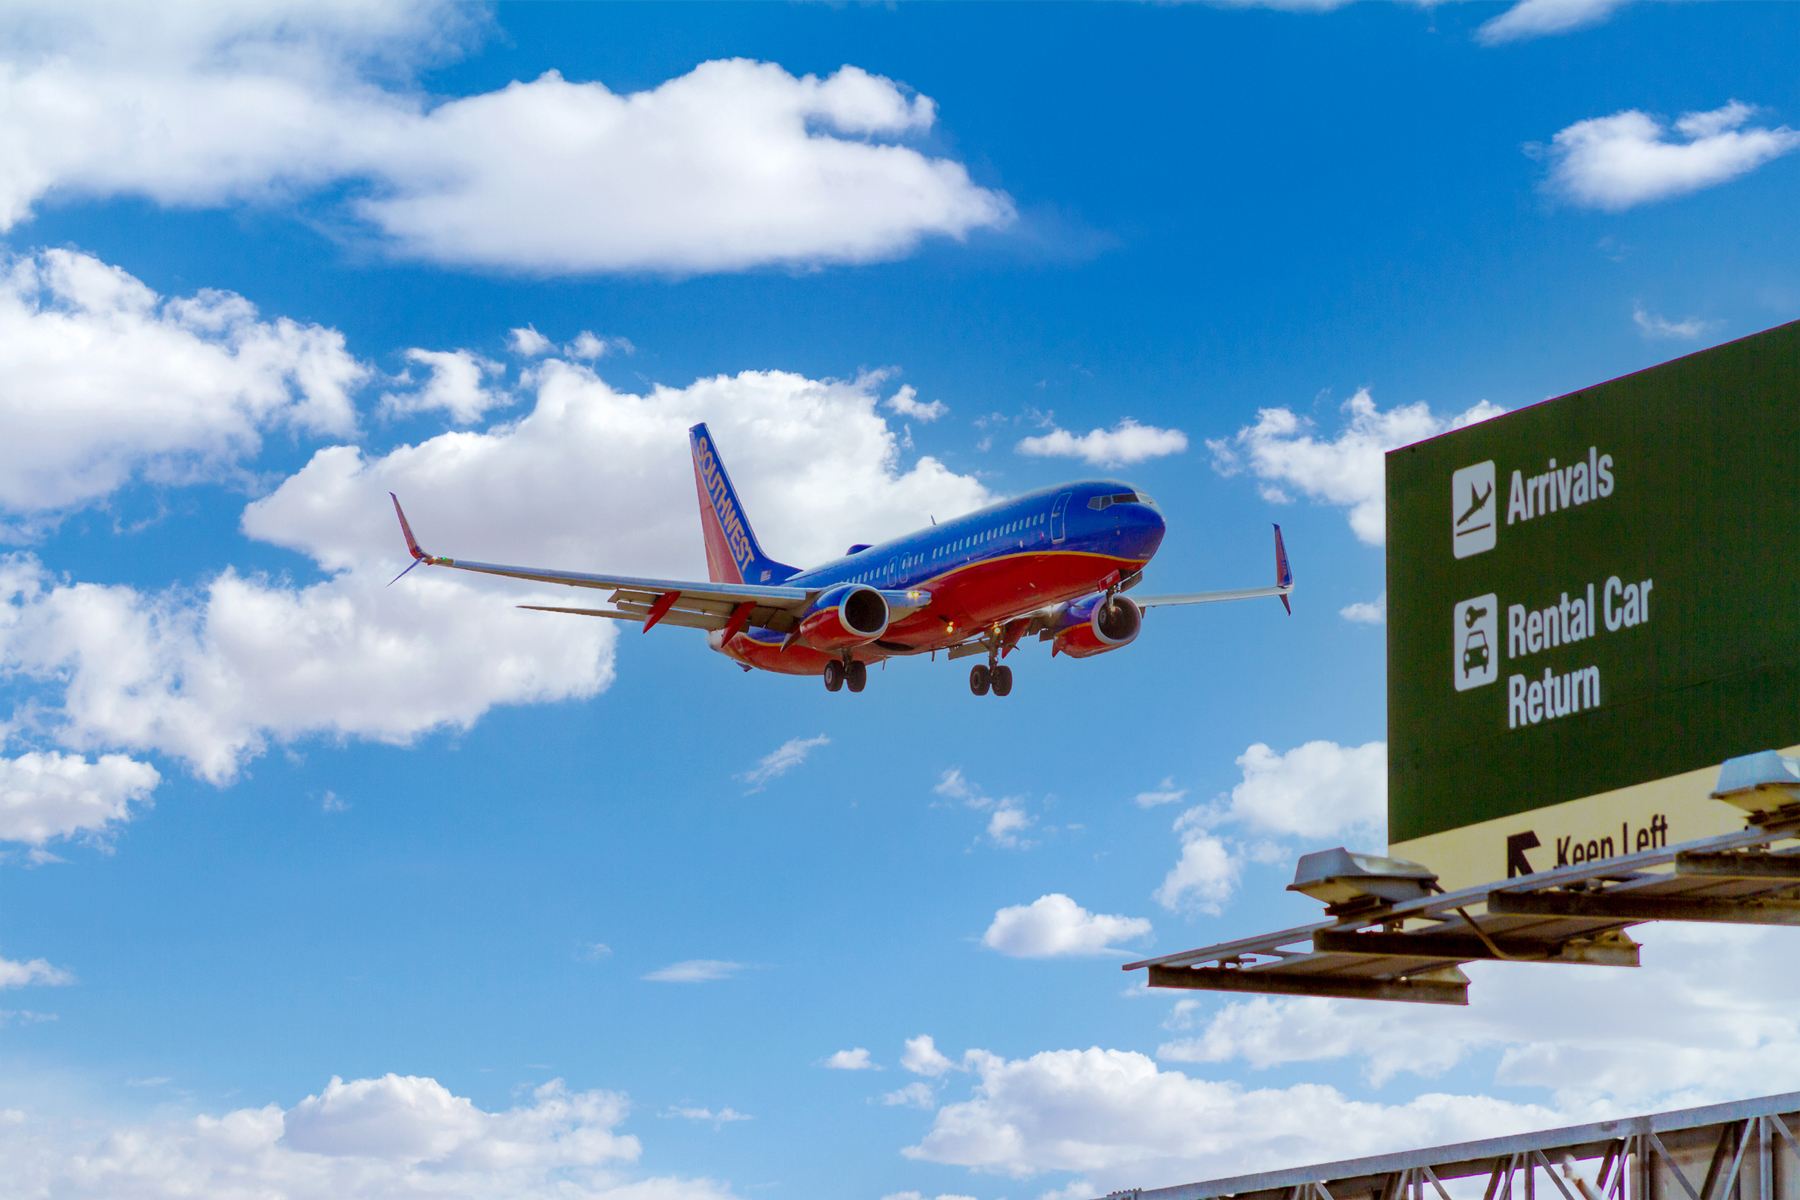 Southwest Airlines airplane coming in for a landing at John Wayne Airport in Orange County, California.